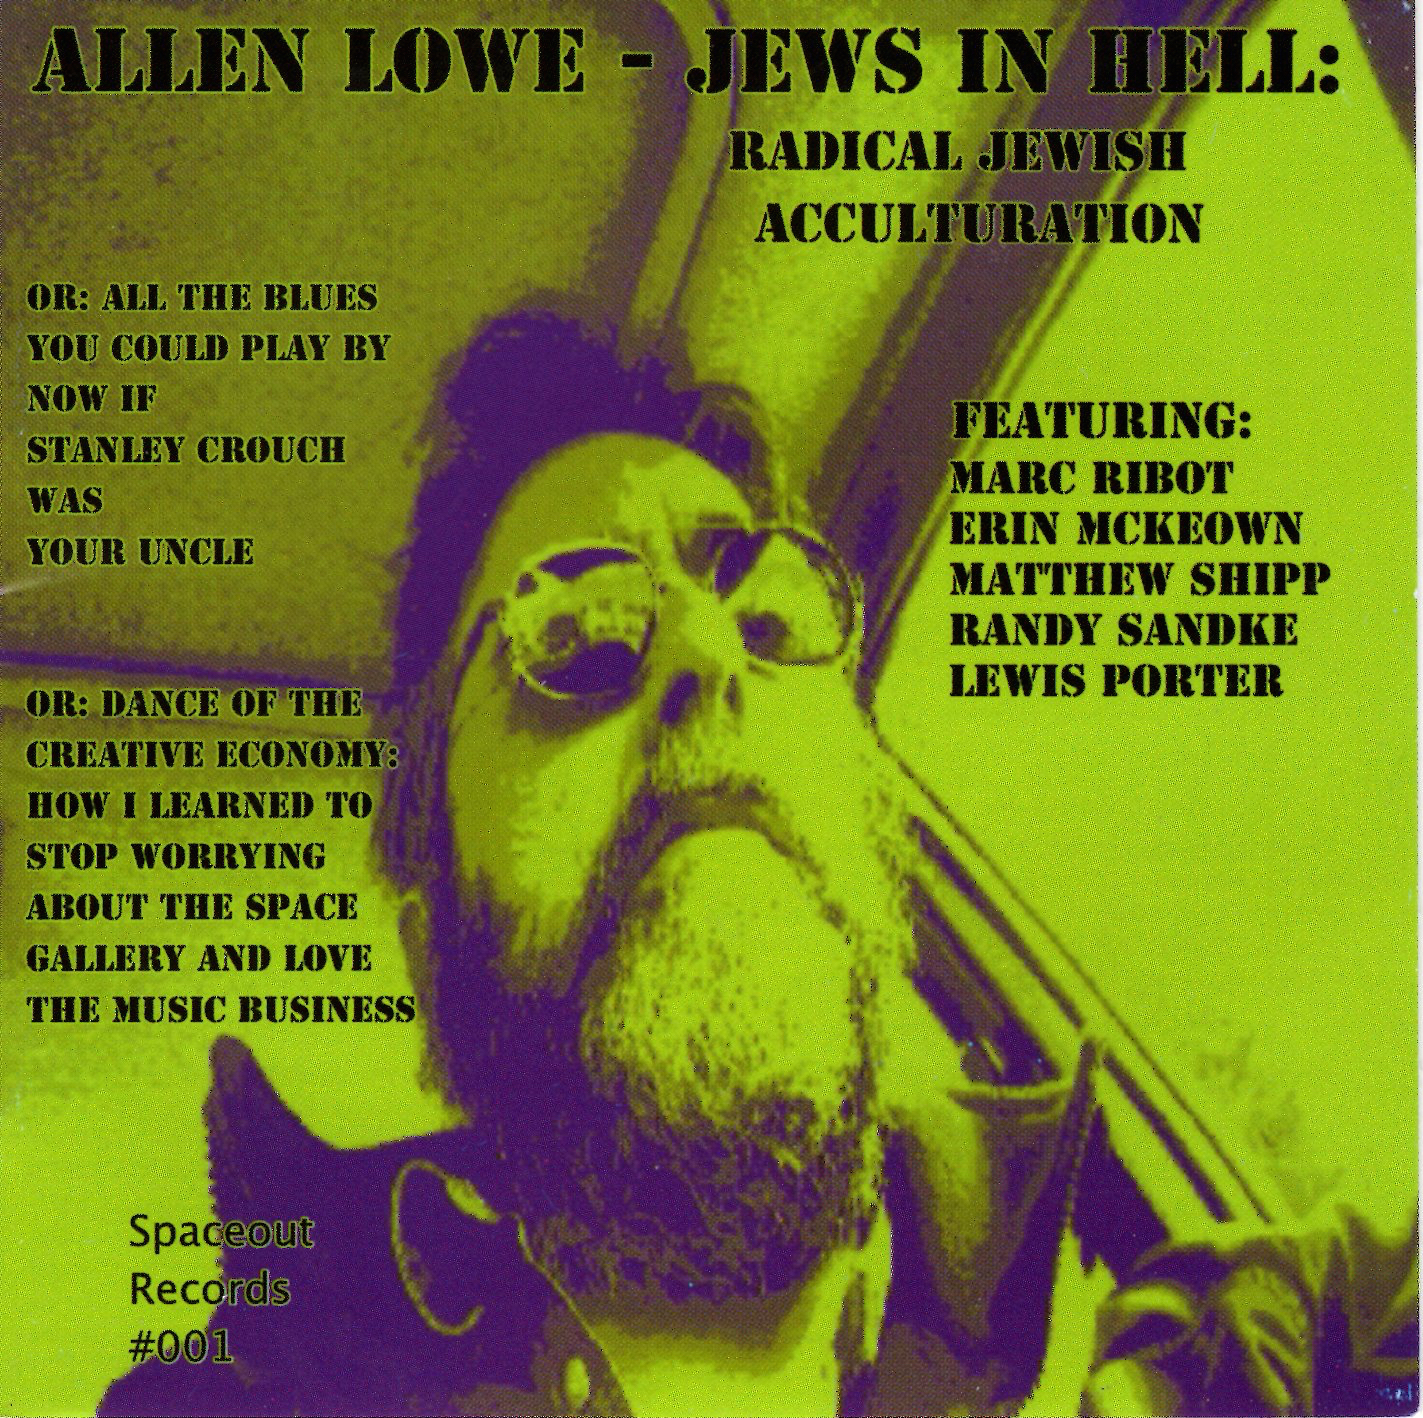 Jews in Hell: Radical Jewish Acculturation